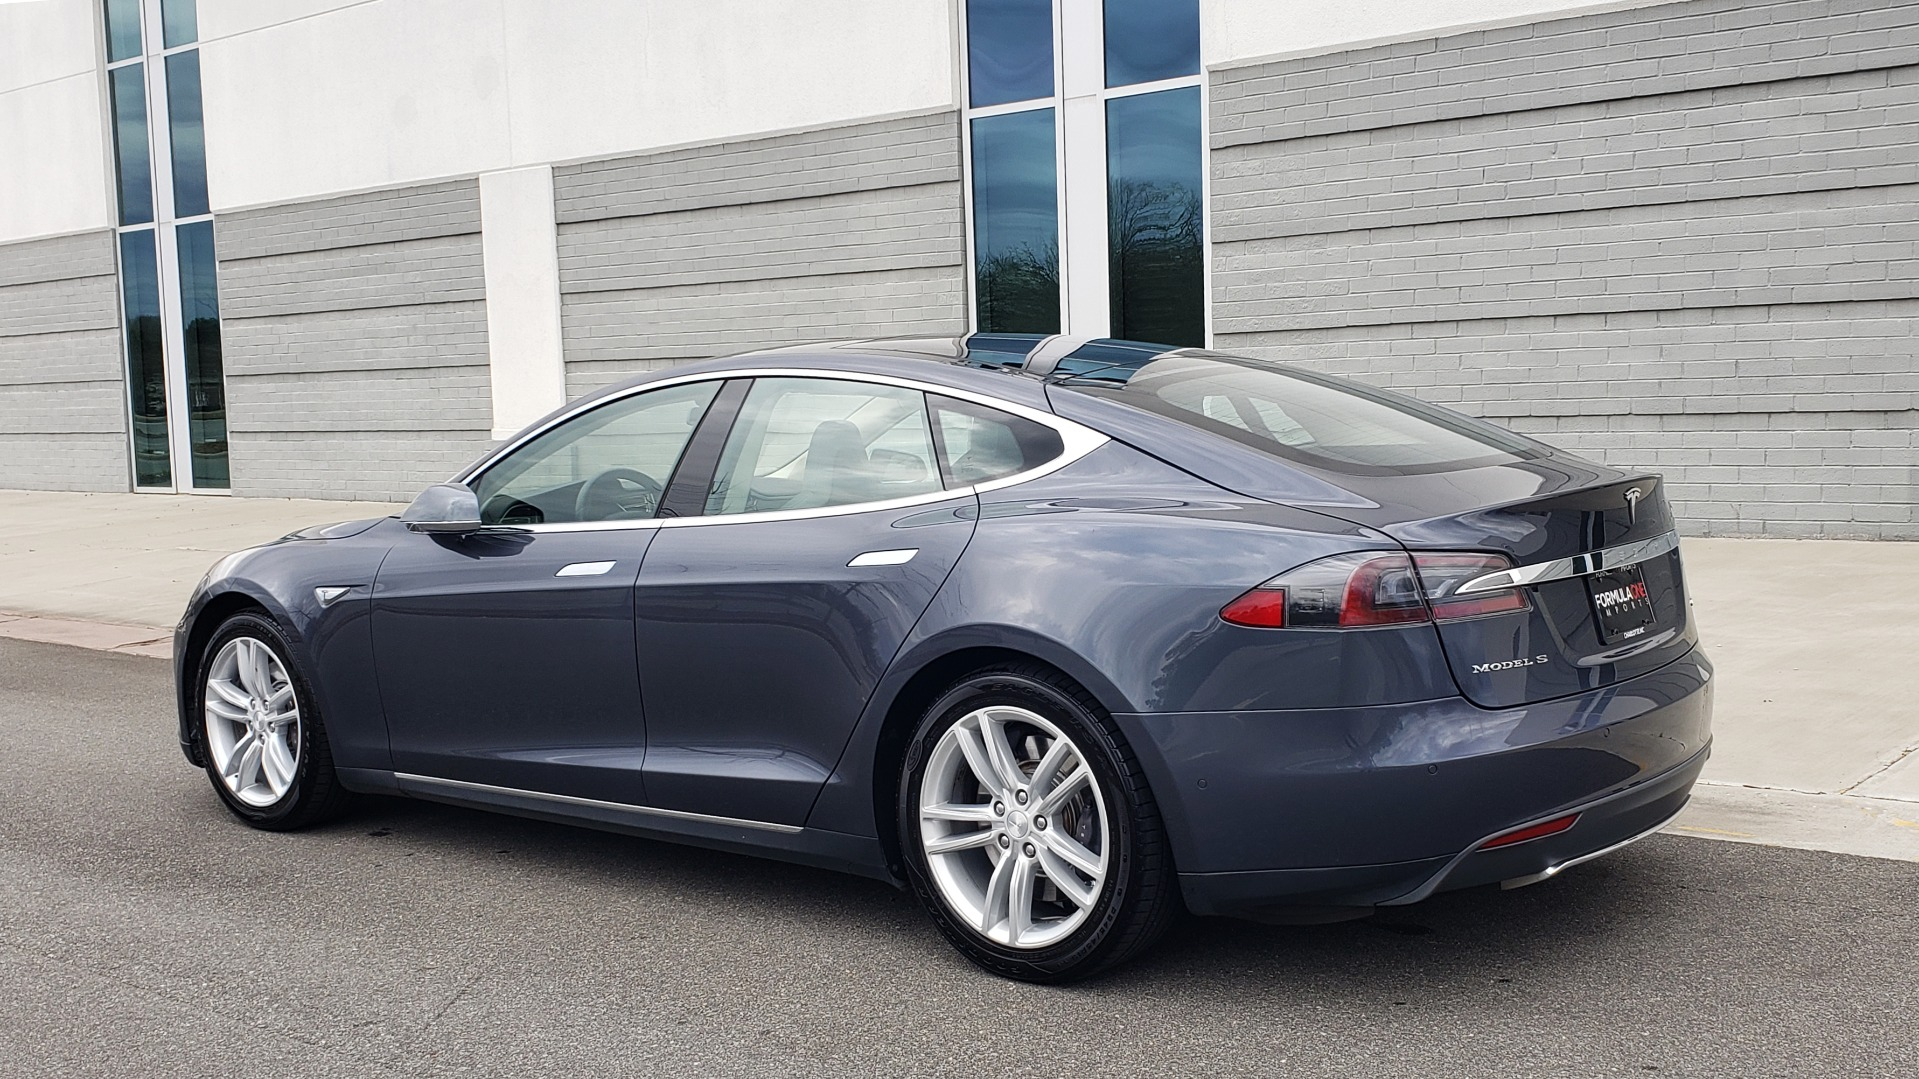 Used 2014 Tesla MODEL S 60 kWh BATTERY / TECH / NAV / SUBZERO / SUNROOF / REARVIEW for sale Sold at Formula Imports in Charlotte NC 28227 5